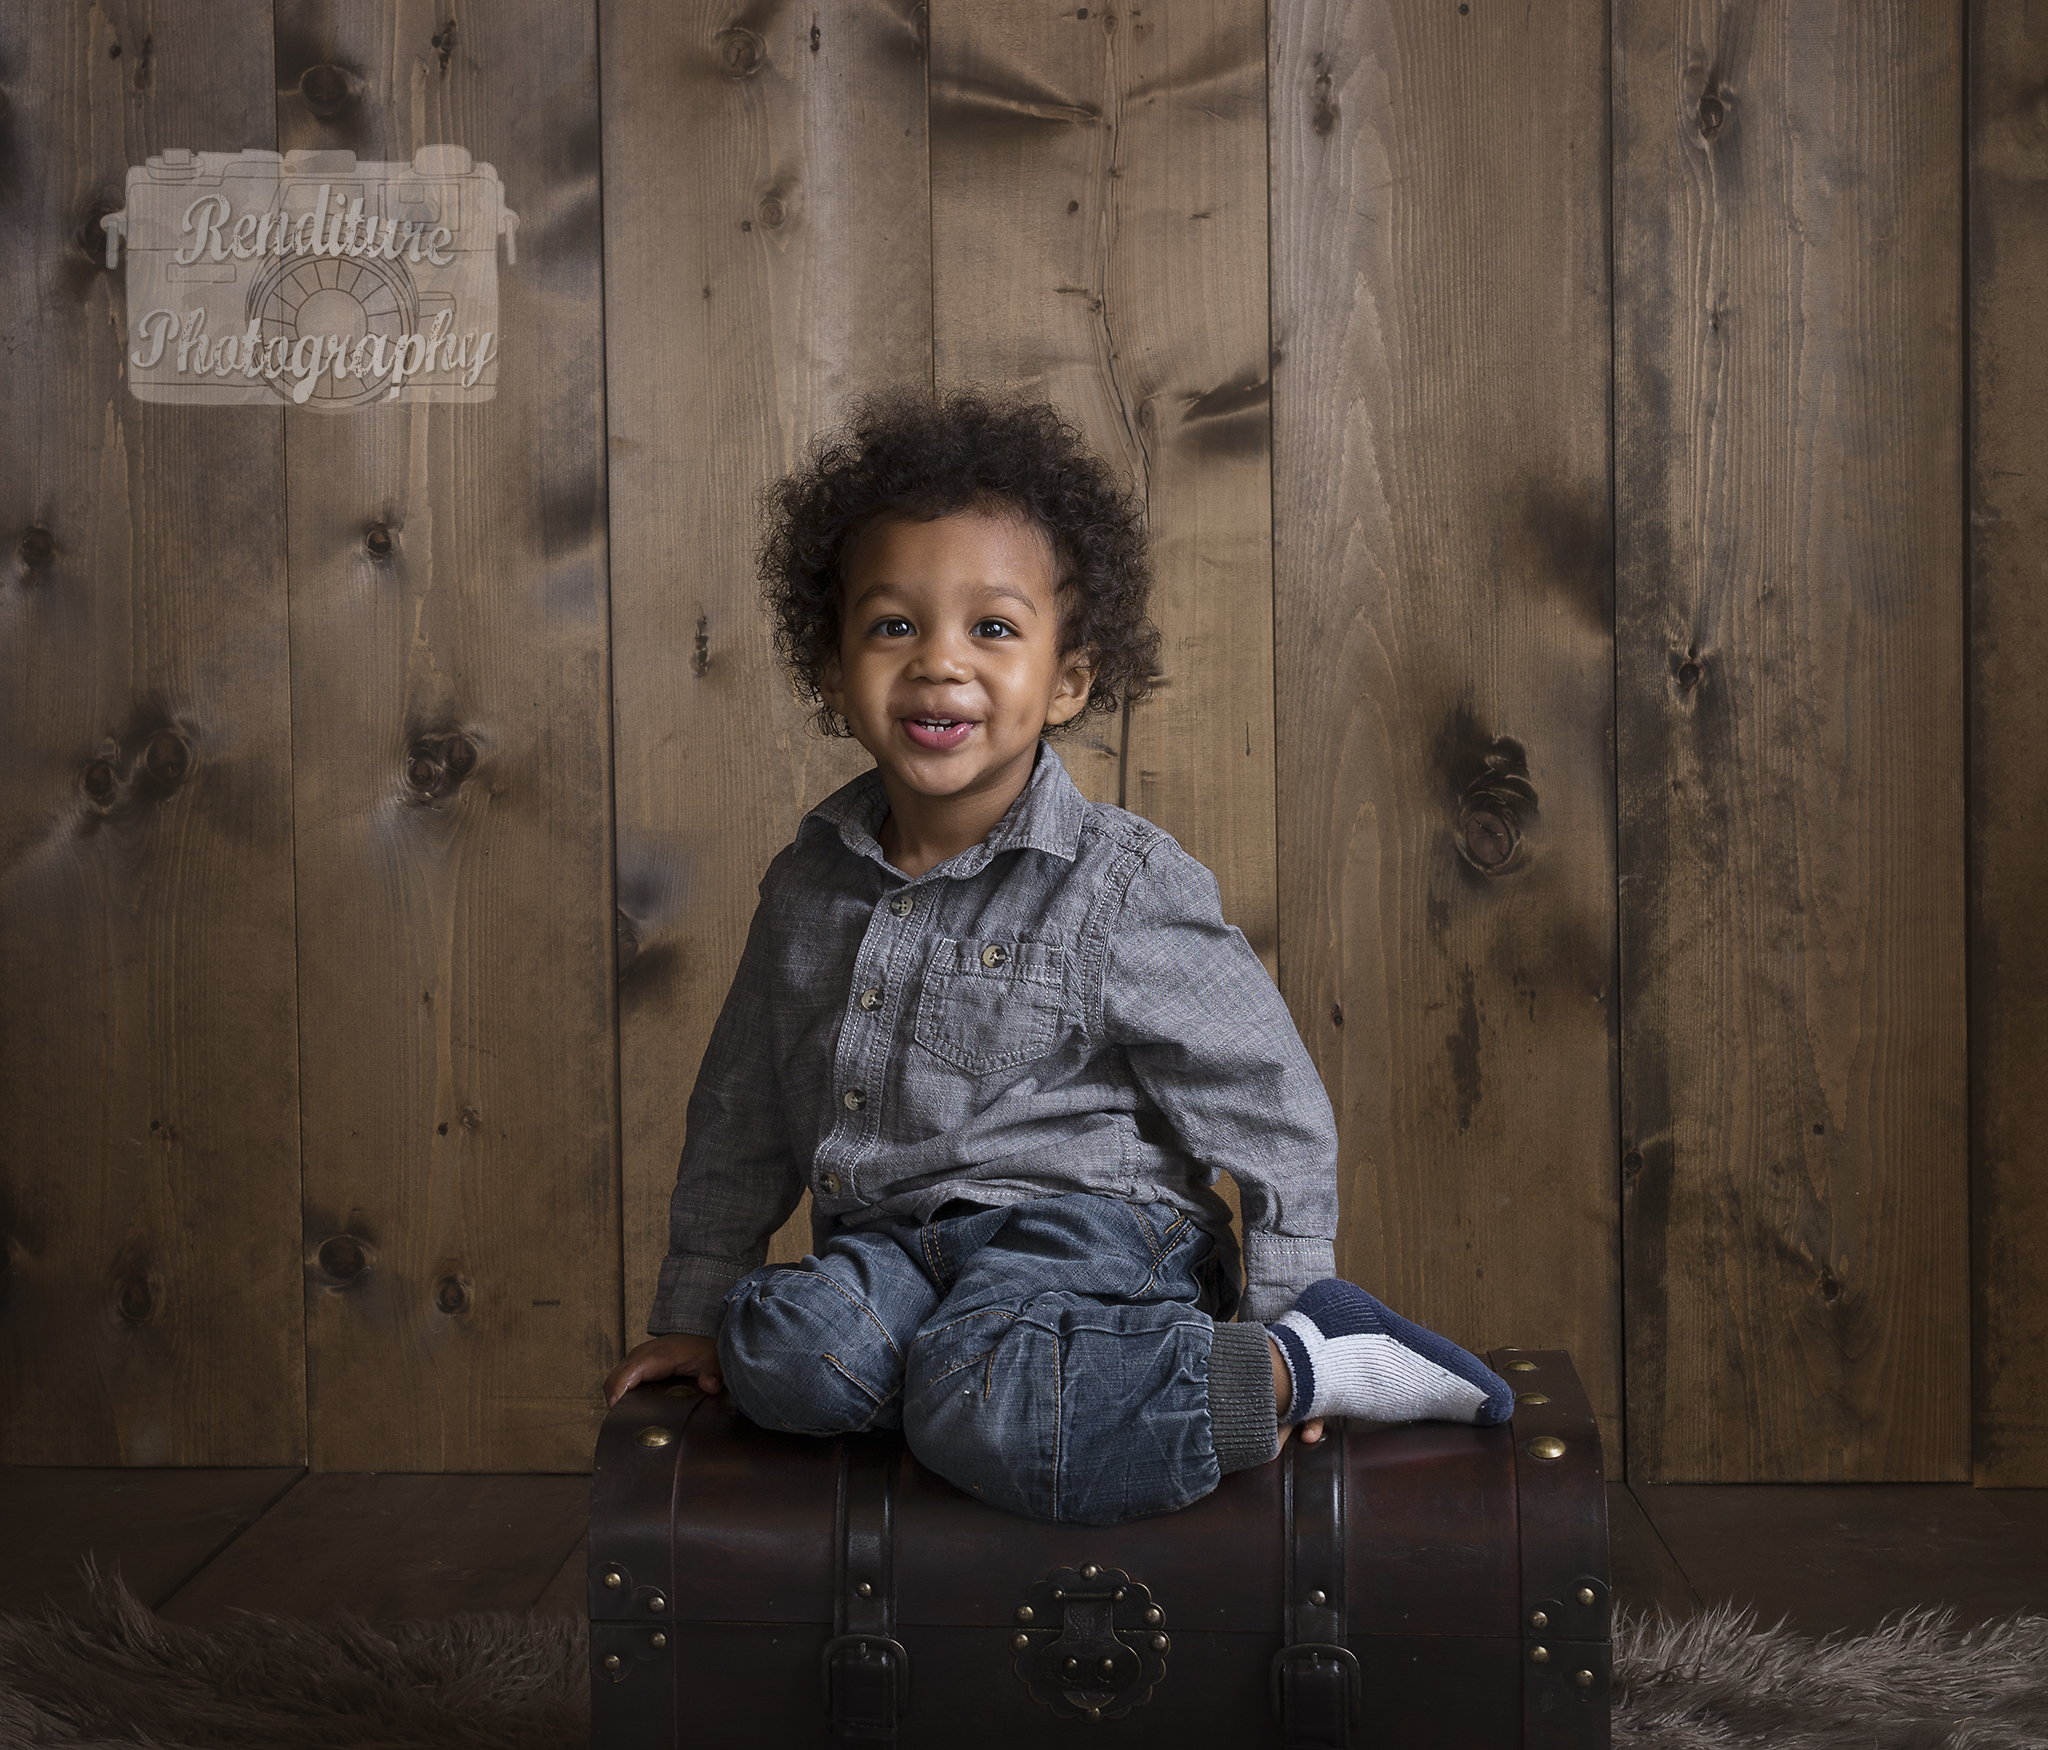 Renditure - Eli Christey 2 Yr Old Child Model - Children's